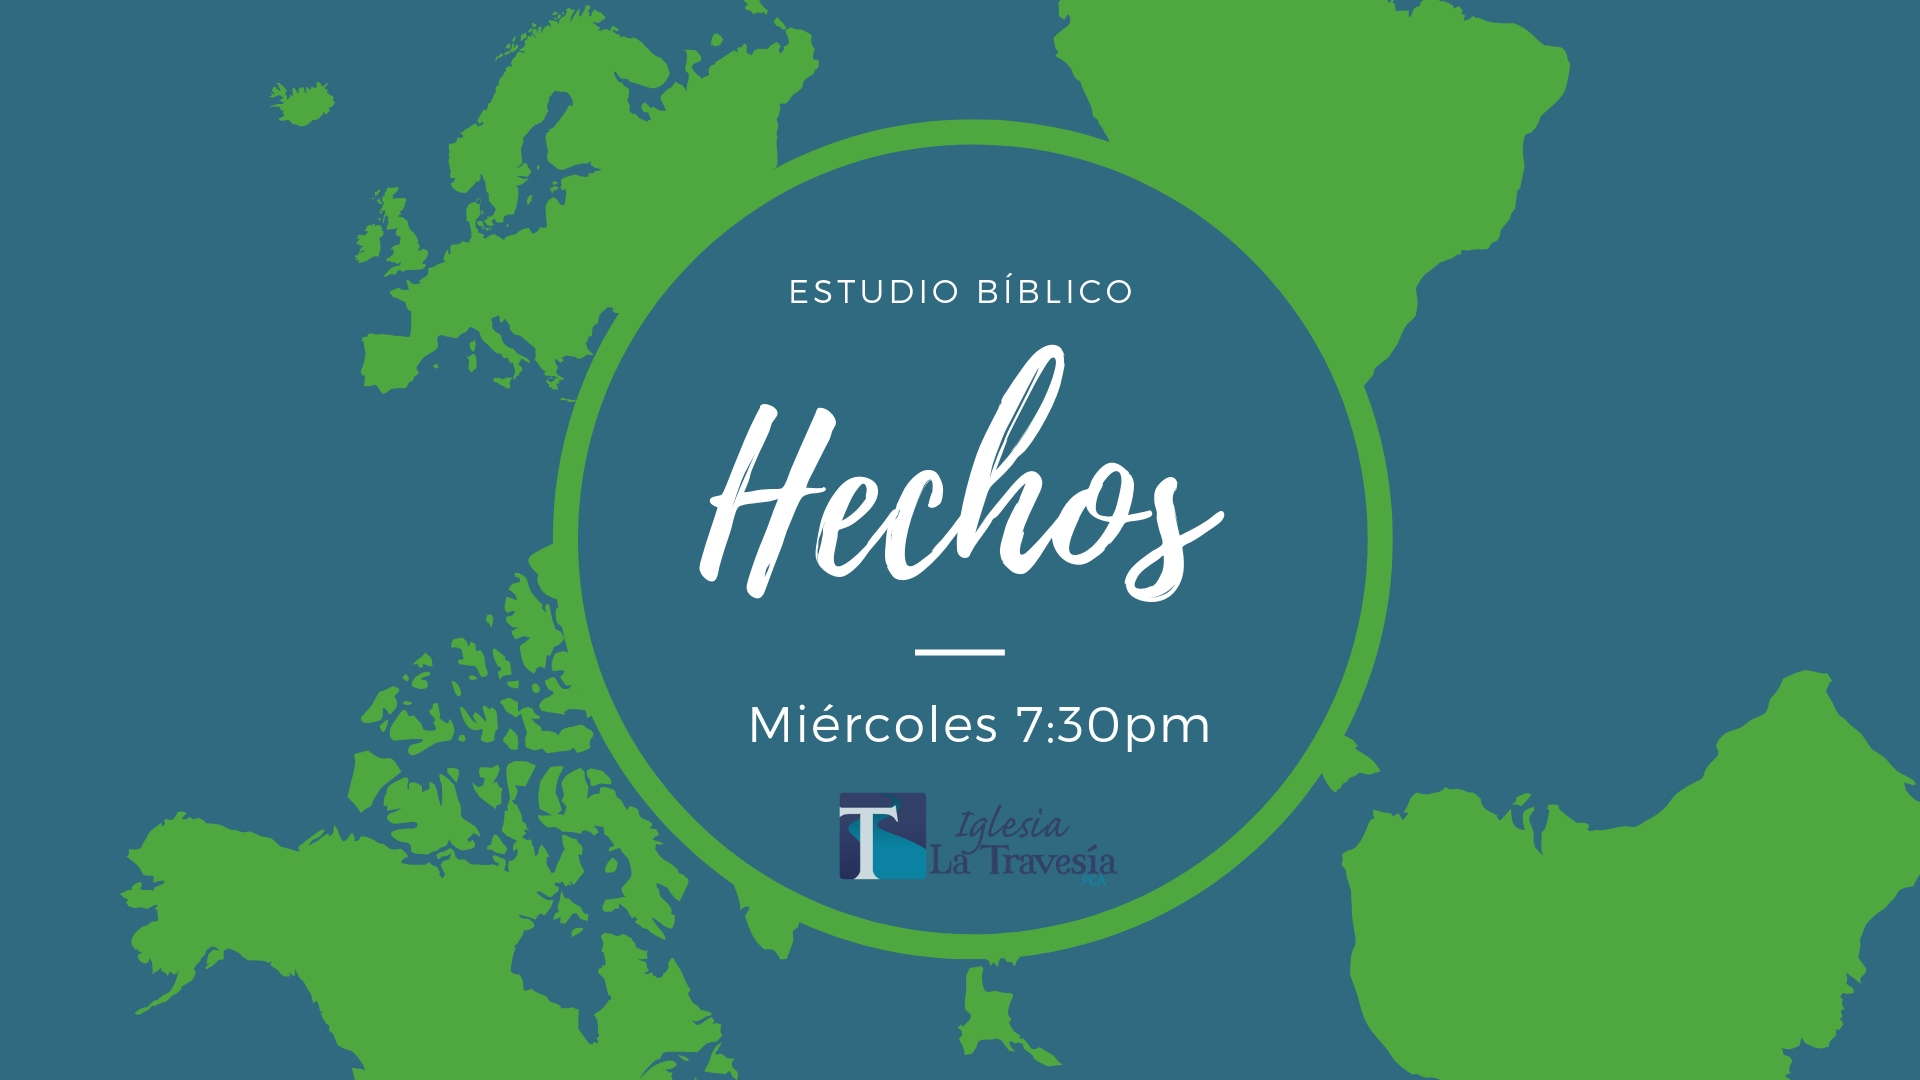 Copy of Hechos.jpg